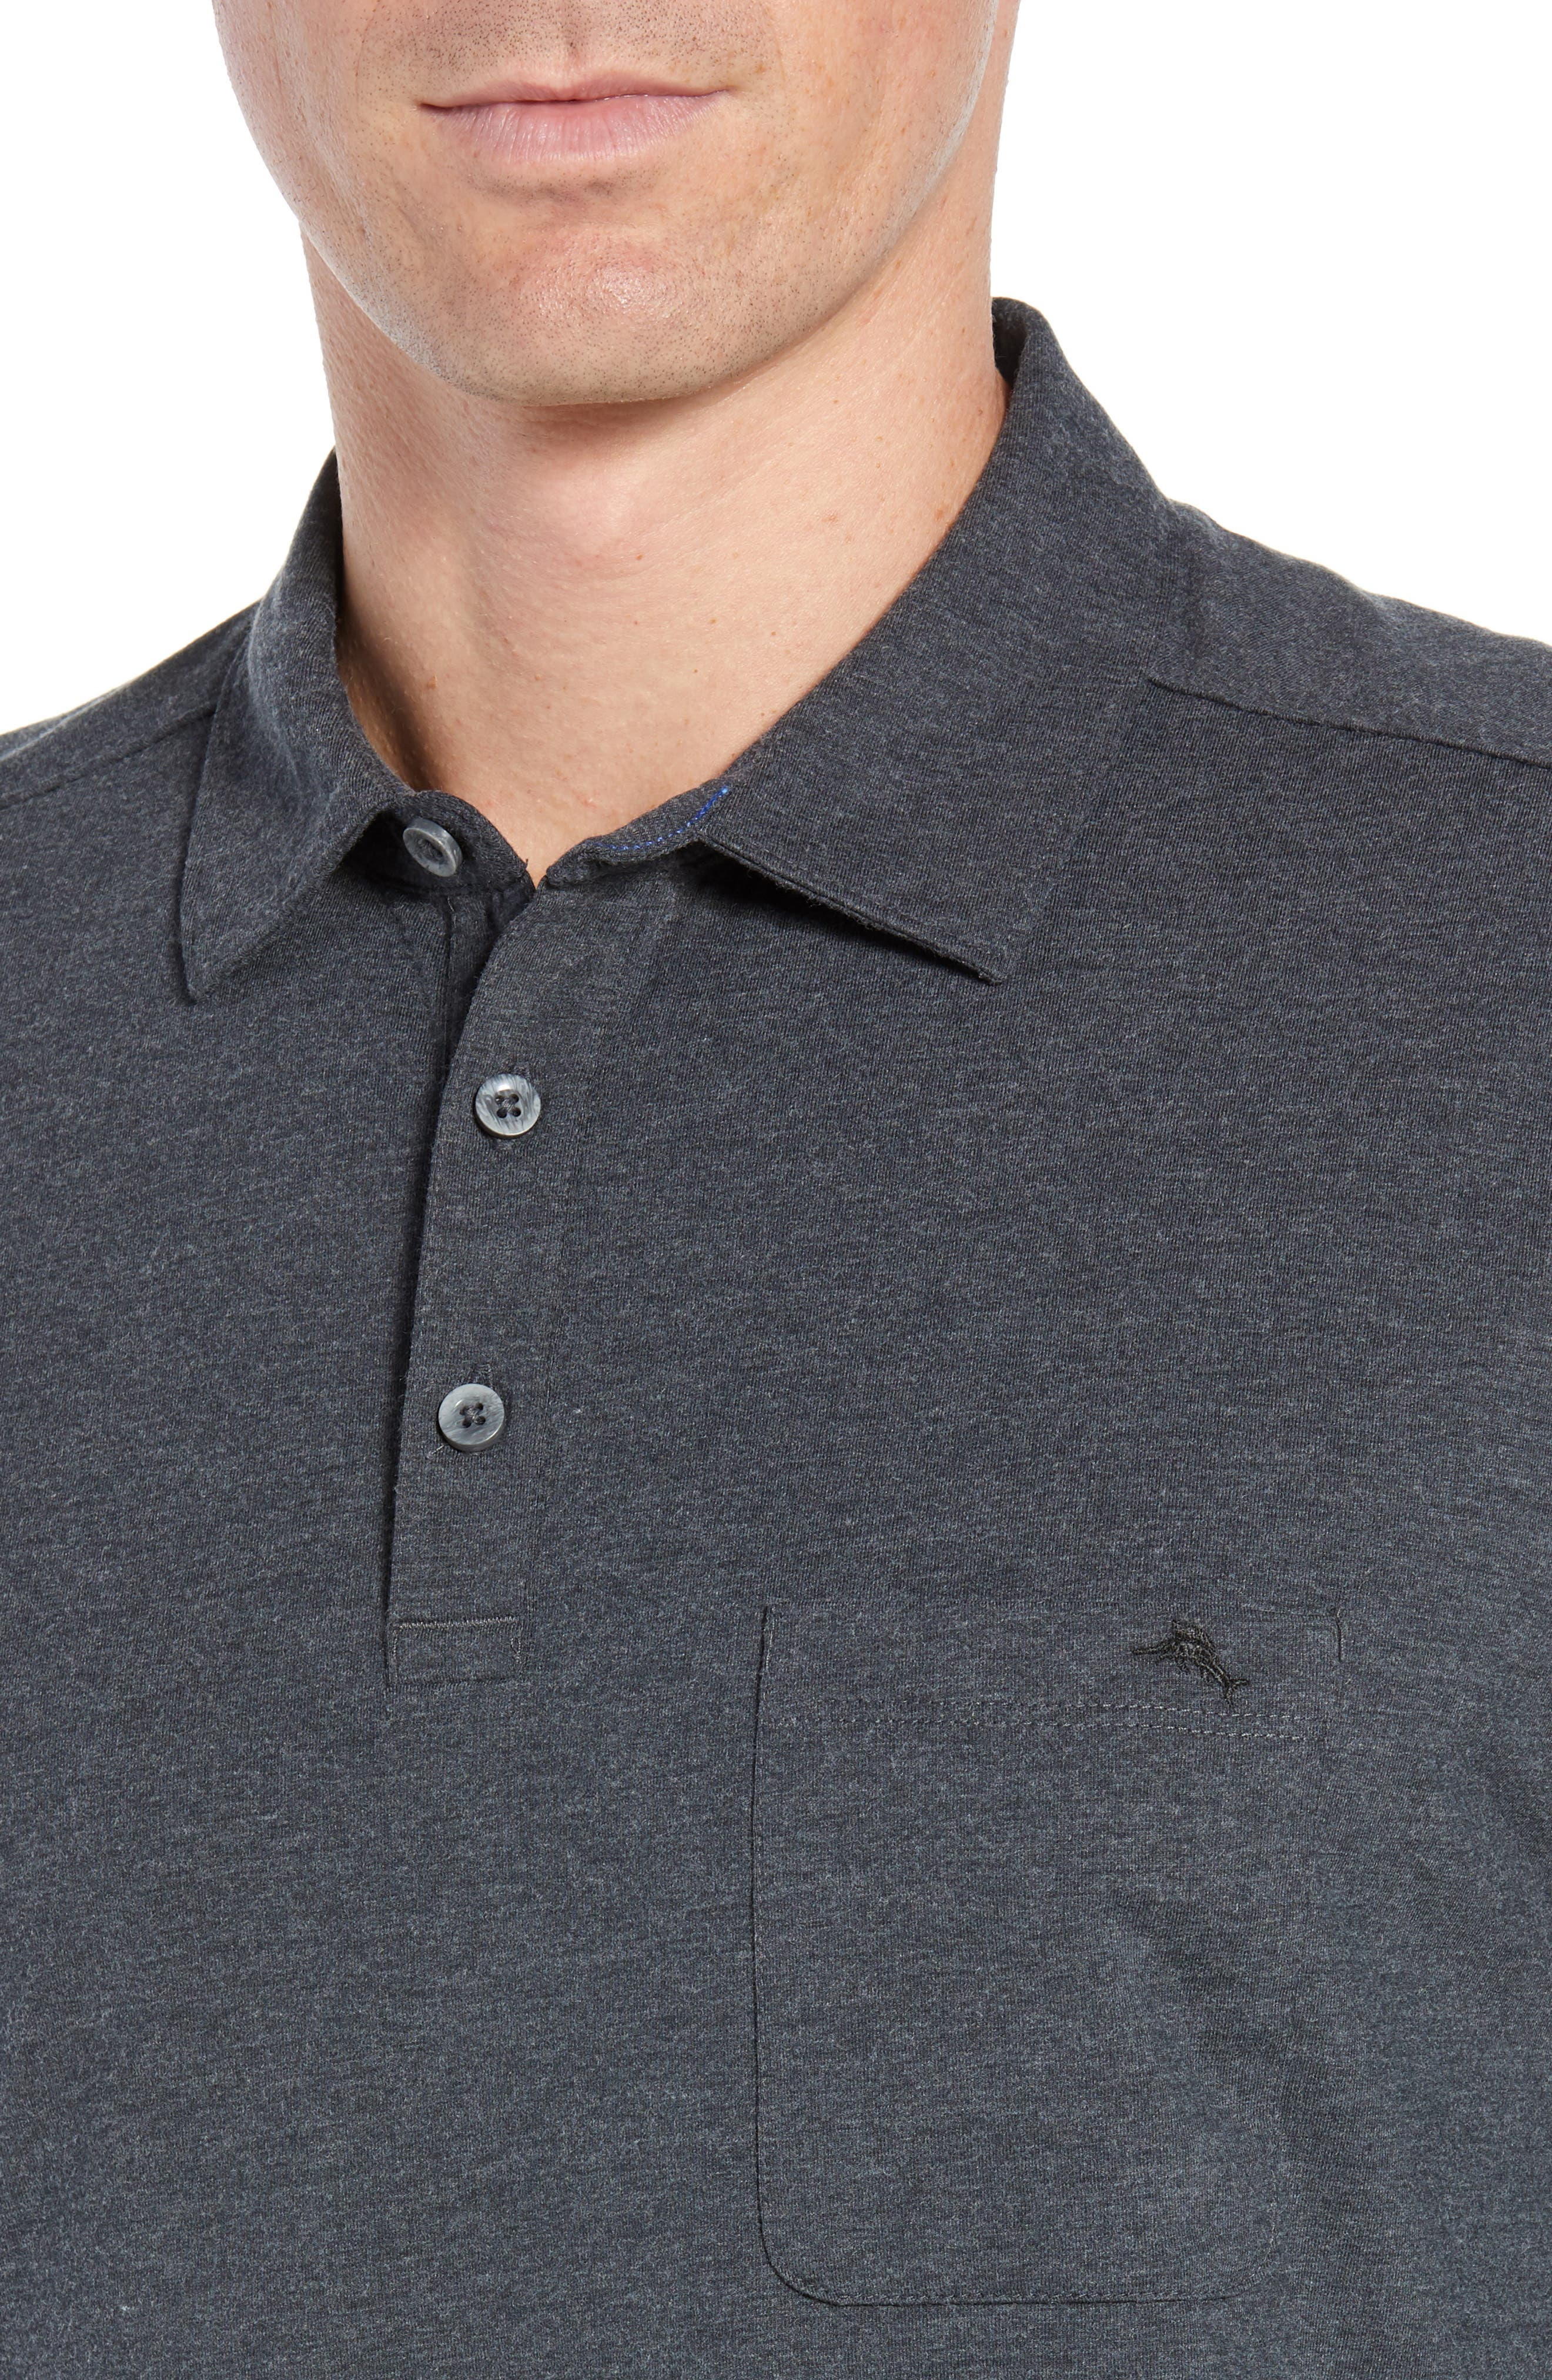 Tropicool Sueded Sands Regular Fit Polo,                             Alternate thumbnail 4, color,                             050